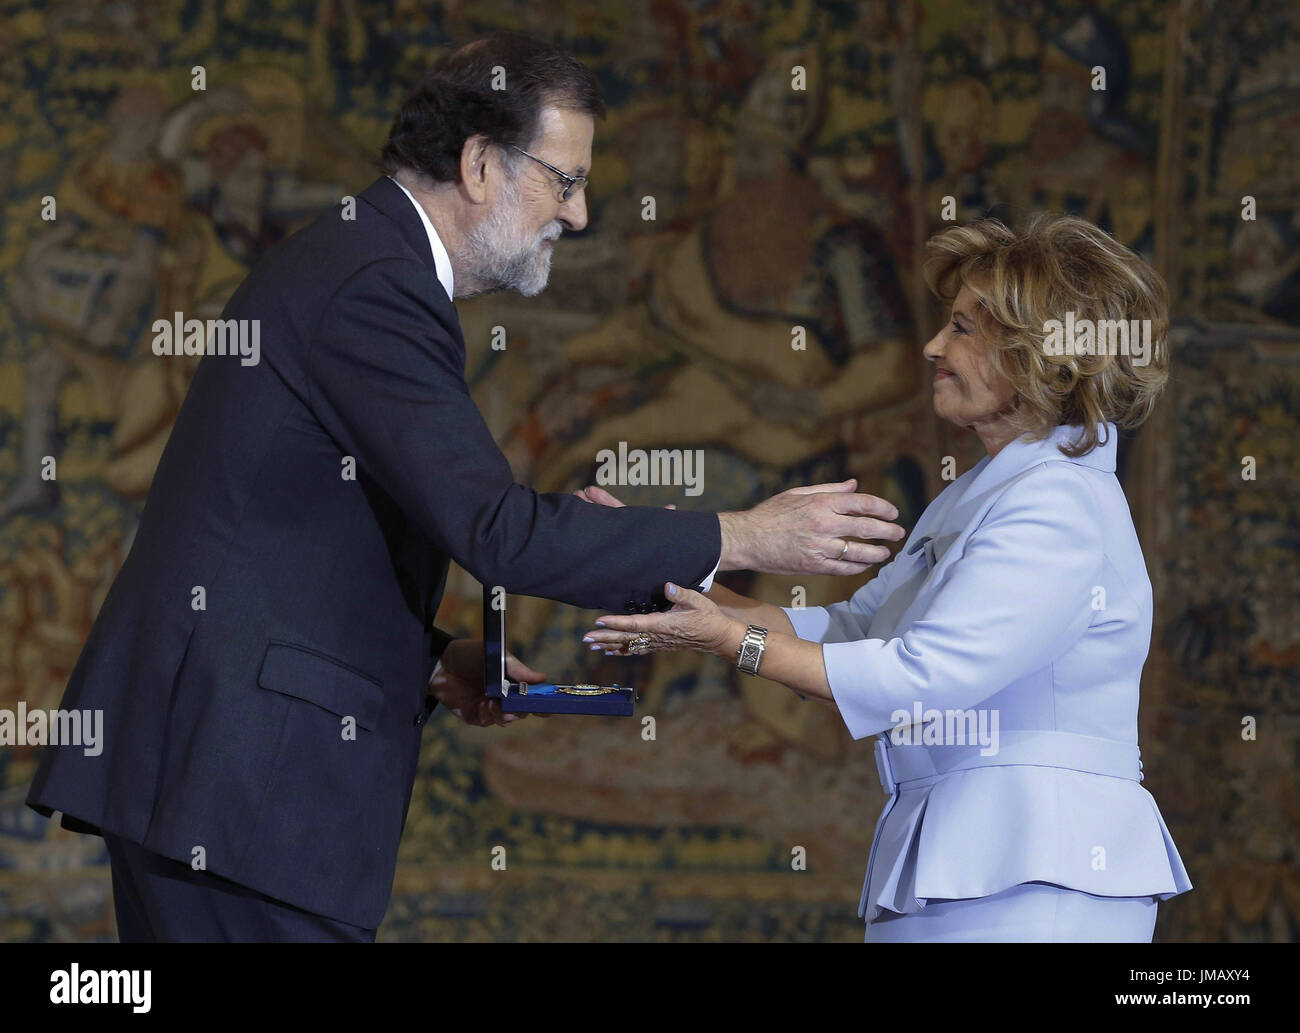 Madrid, Spain. 27th July, 2017. Spanish Prime Minister, Mariano Rajoy (L), grants the Gold Medal of Merit in Work to Spanish journalist Teresa Campos during the Gold Medal of Merit in Work handover ceremony held at the Palace of la Moncloa in Madrid, Spain, 27 July 2017. EFE/Paco Campos Credit: EFE News Agency/Alamy Live News - Stock Image